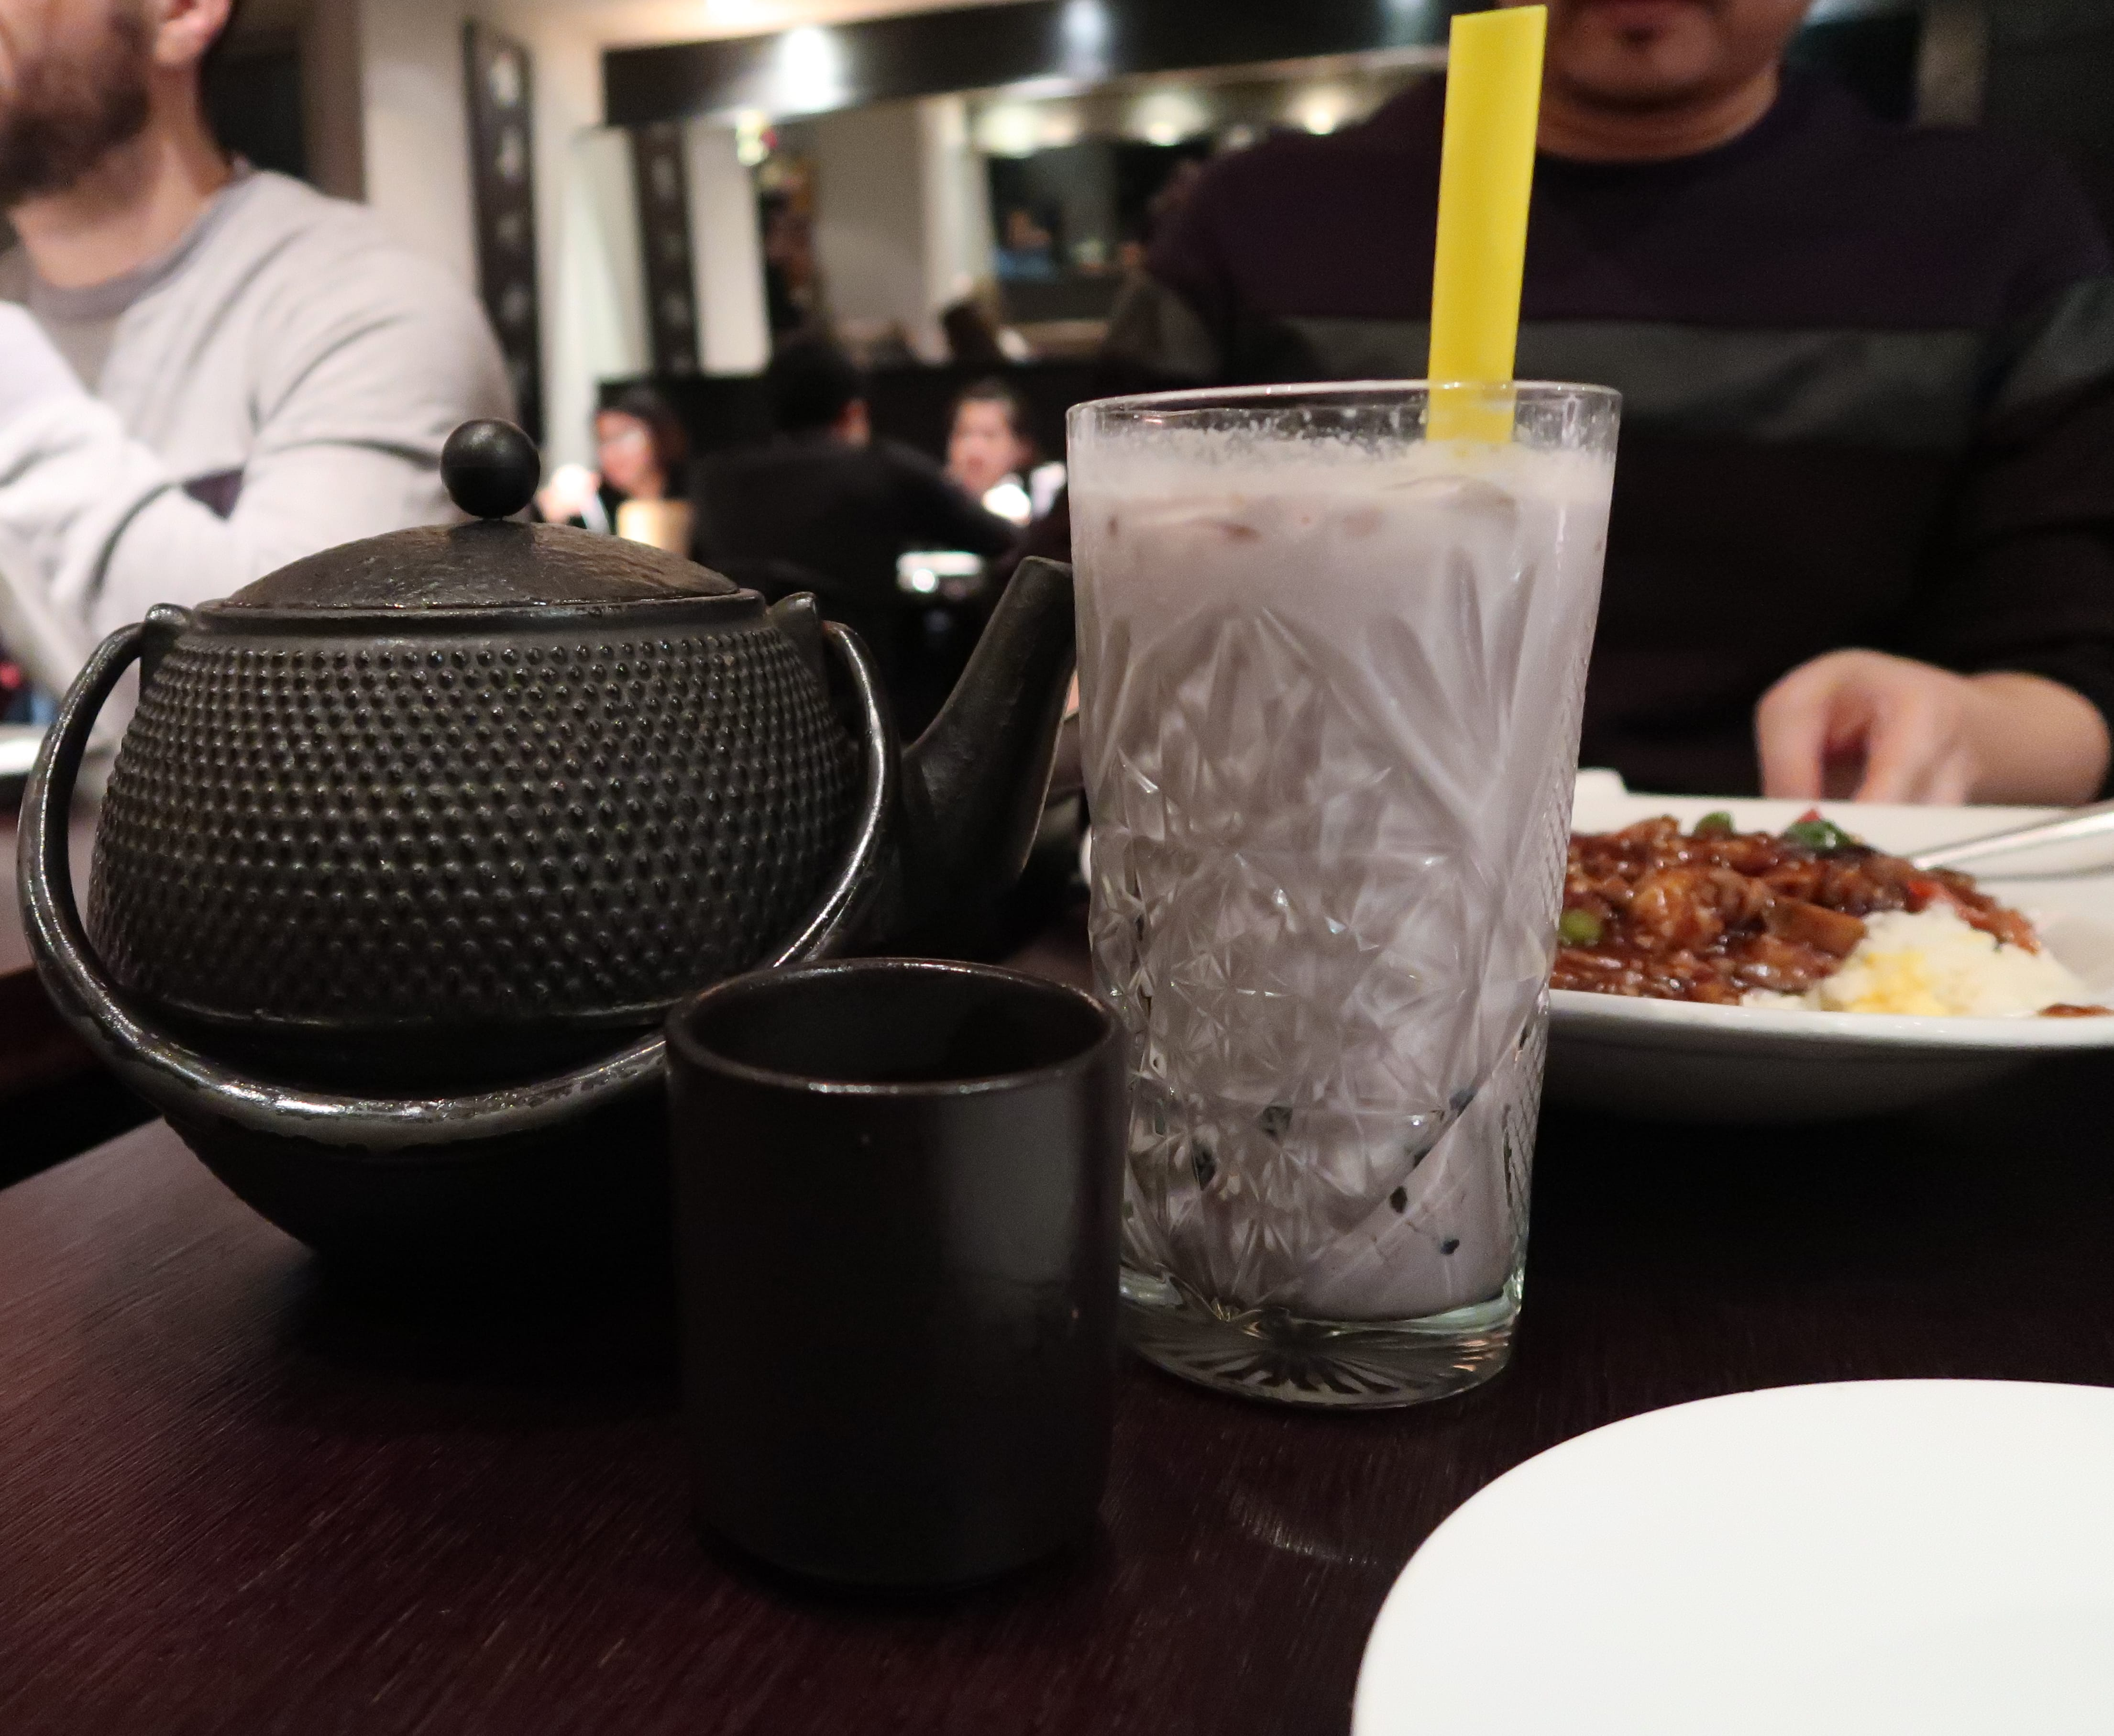 Black teapot with black cup and glass of bubble milk tea